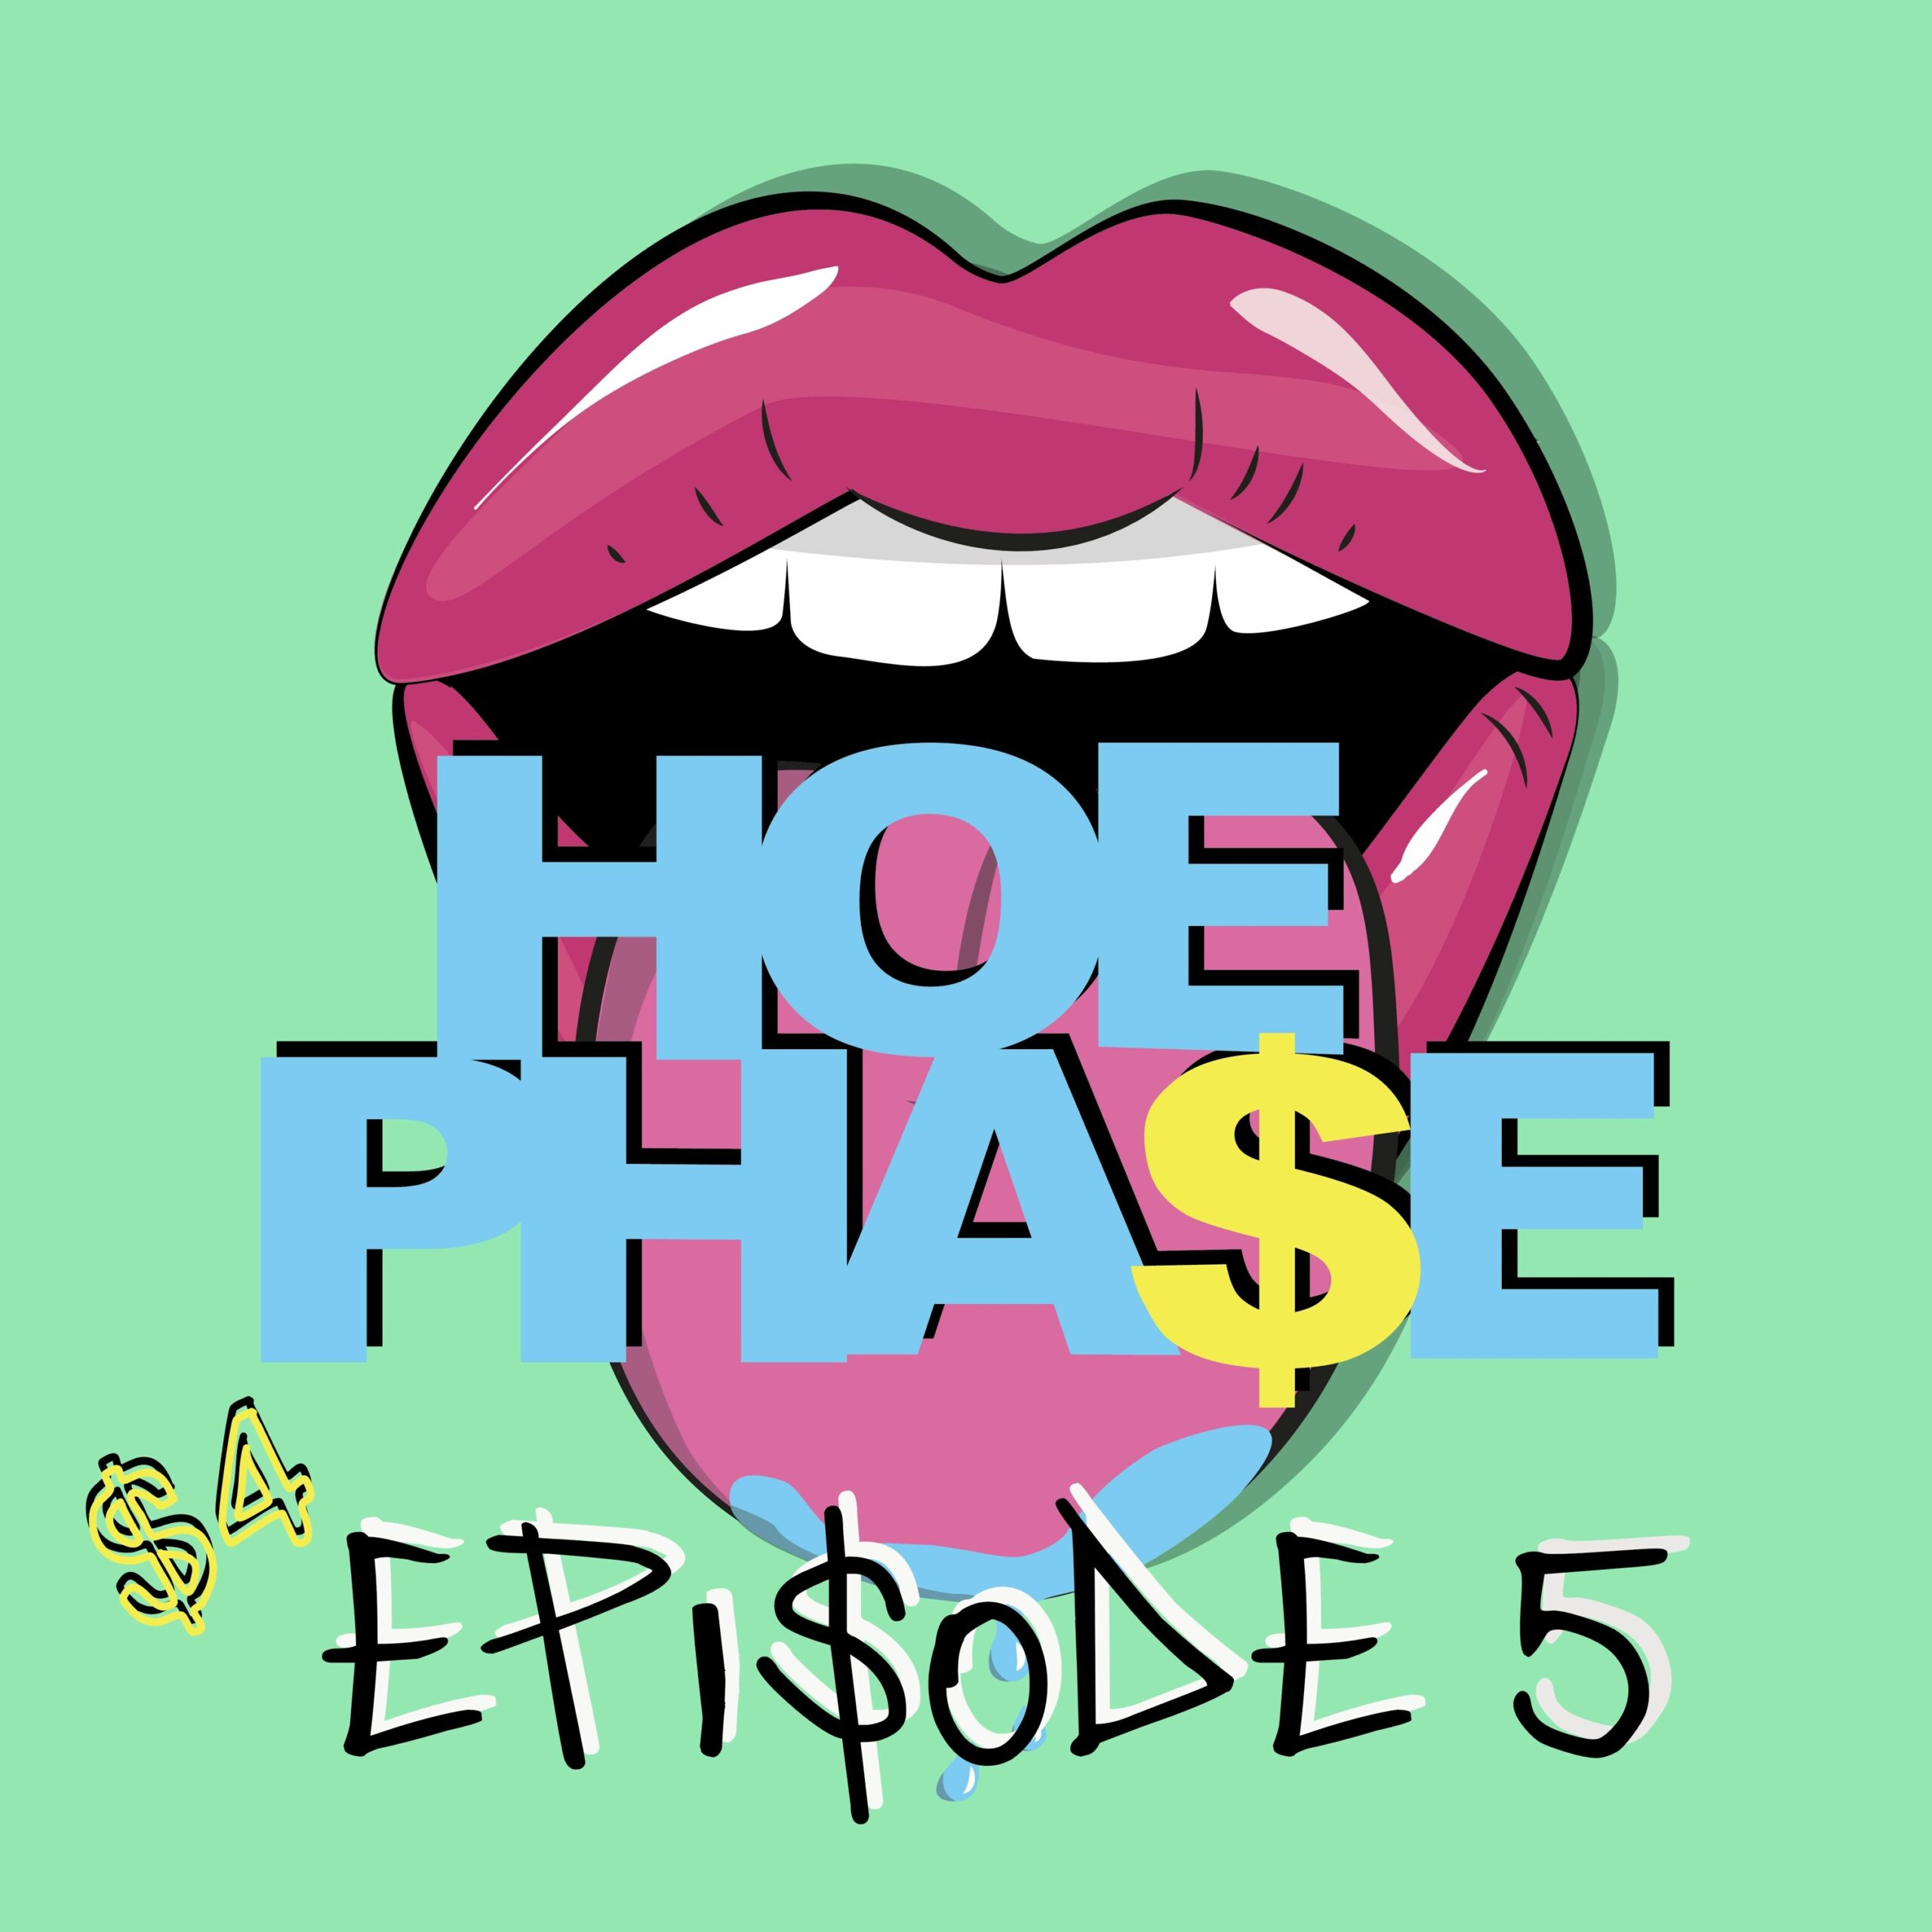 THE HOE PHA$E S4 EP 5- 'IS YOUR DI$CERNMENT GAME ON POINT?!'